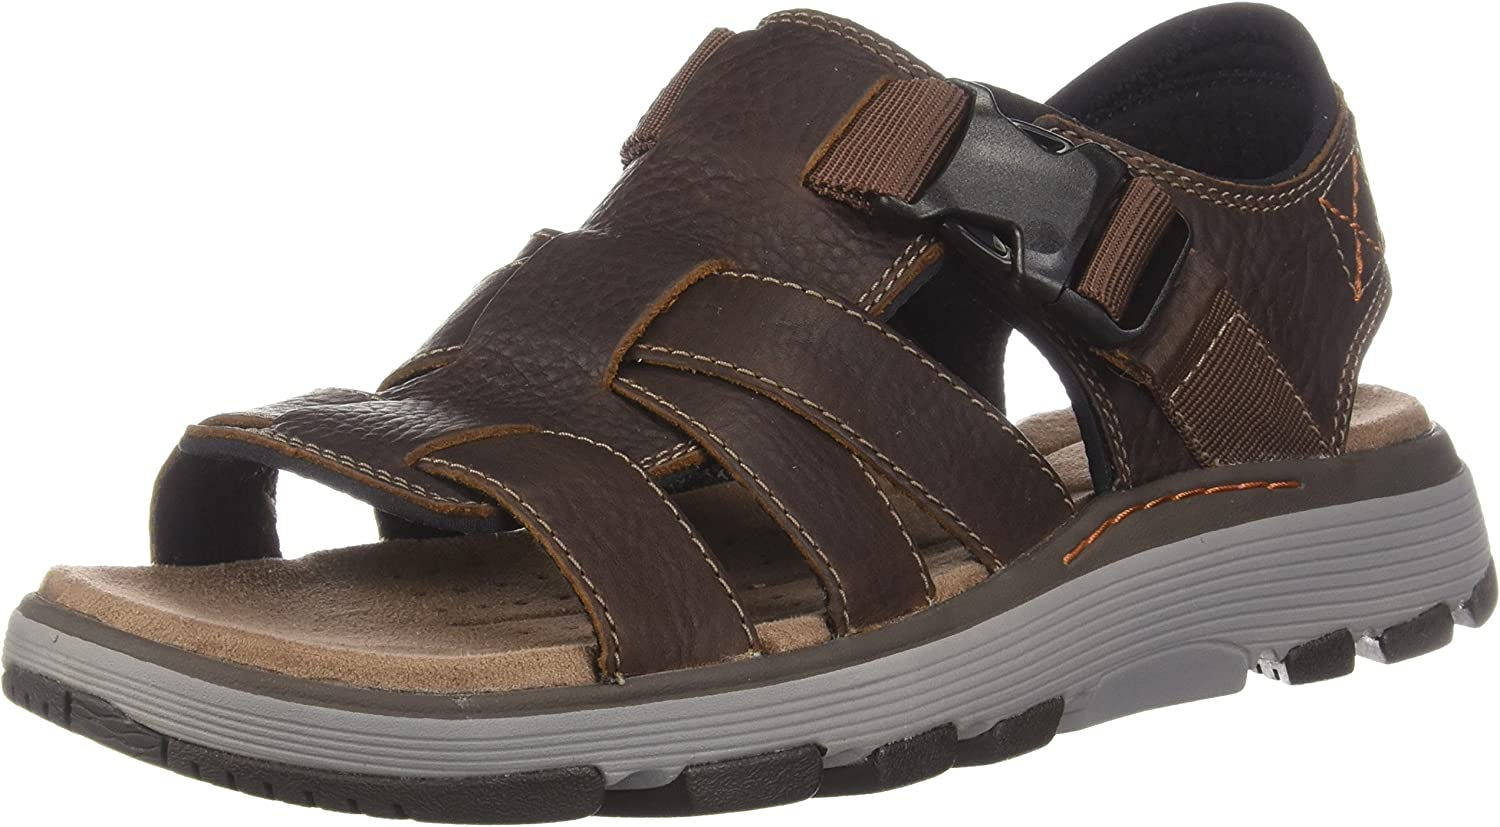 Clarks Men's UnTrek Cove Sport Sandals